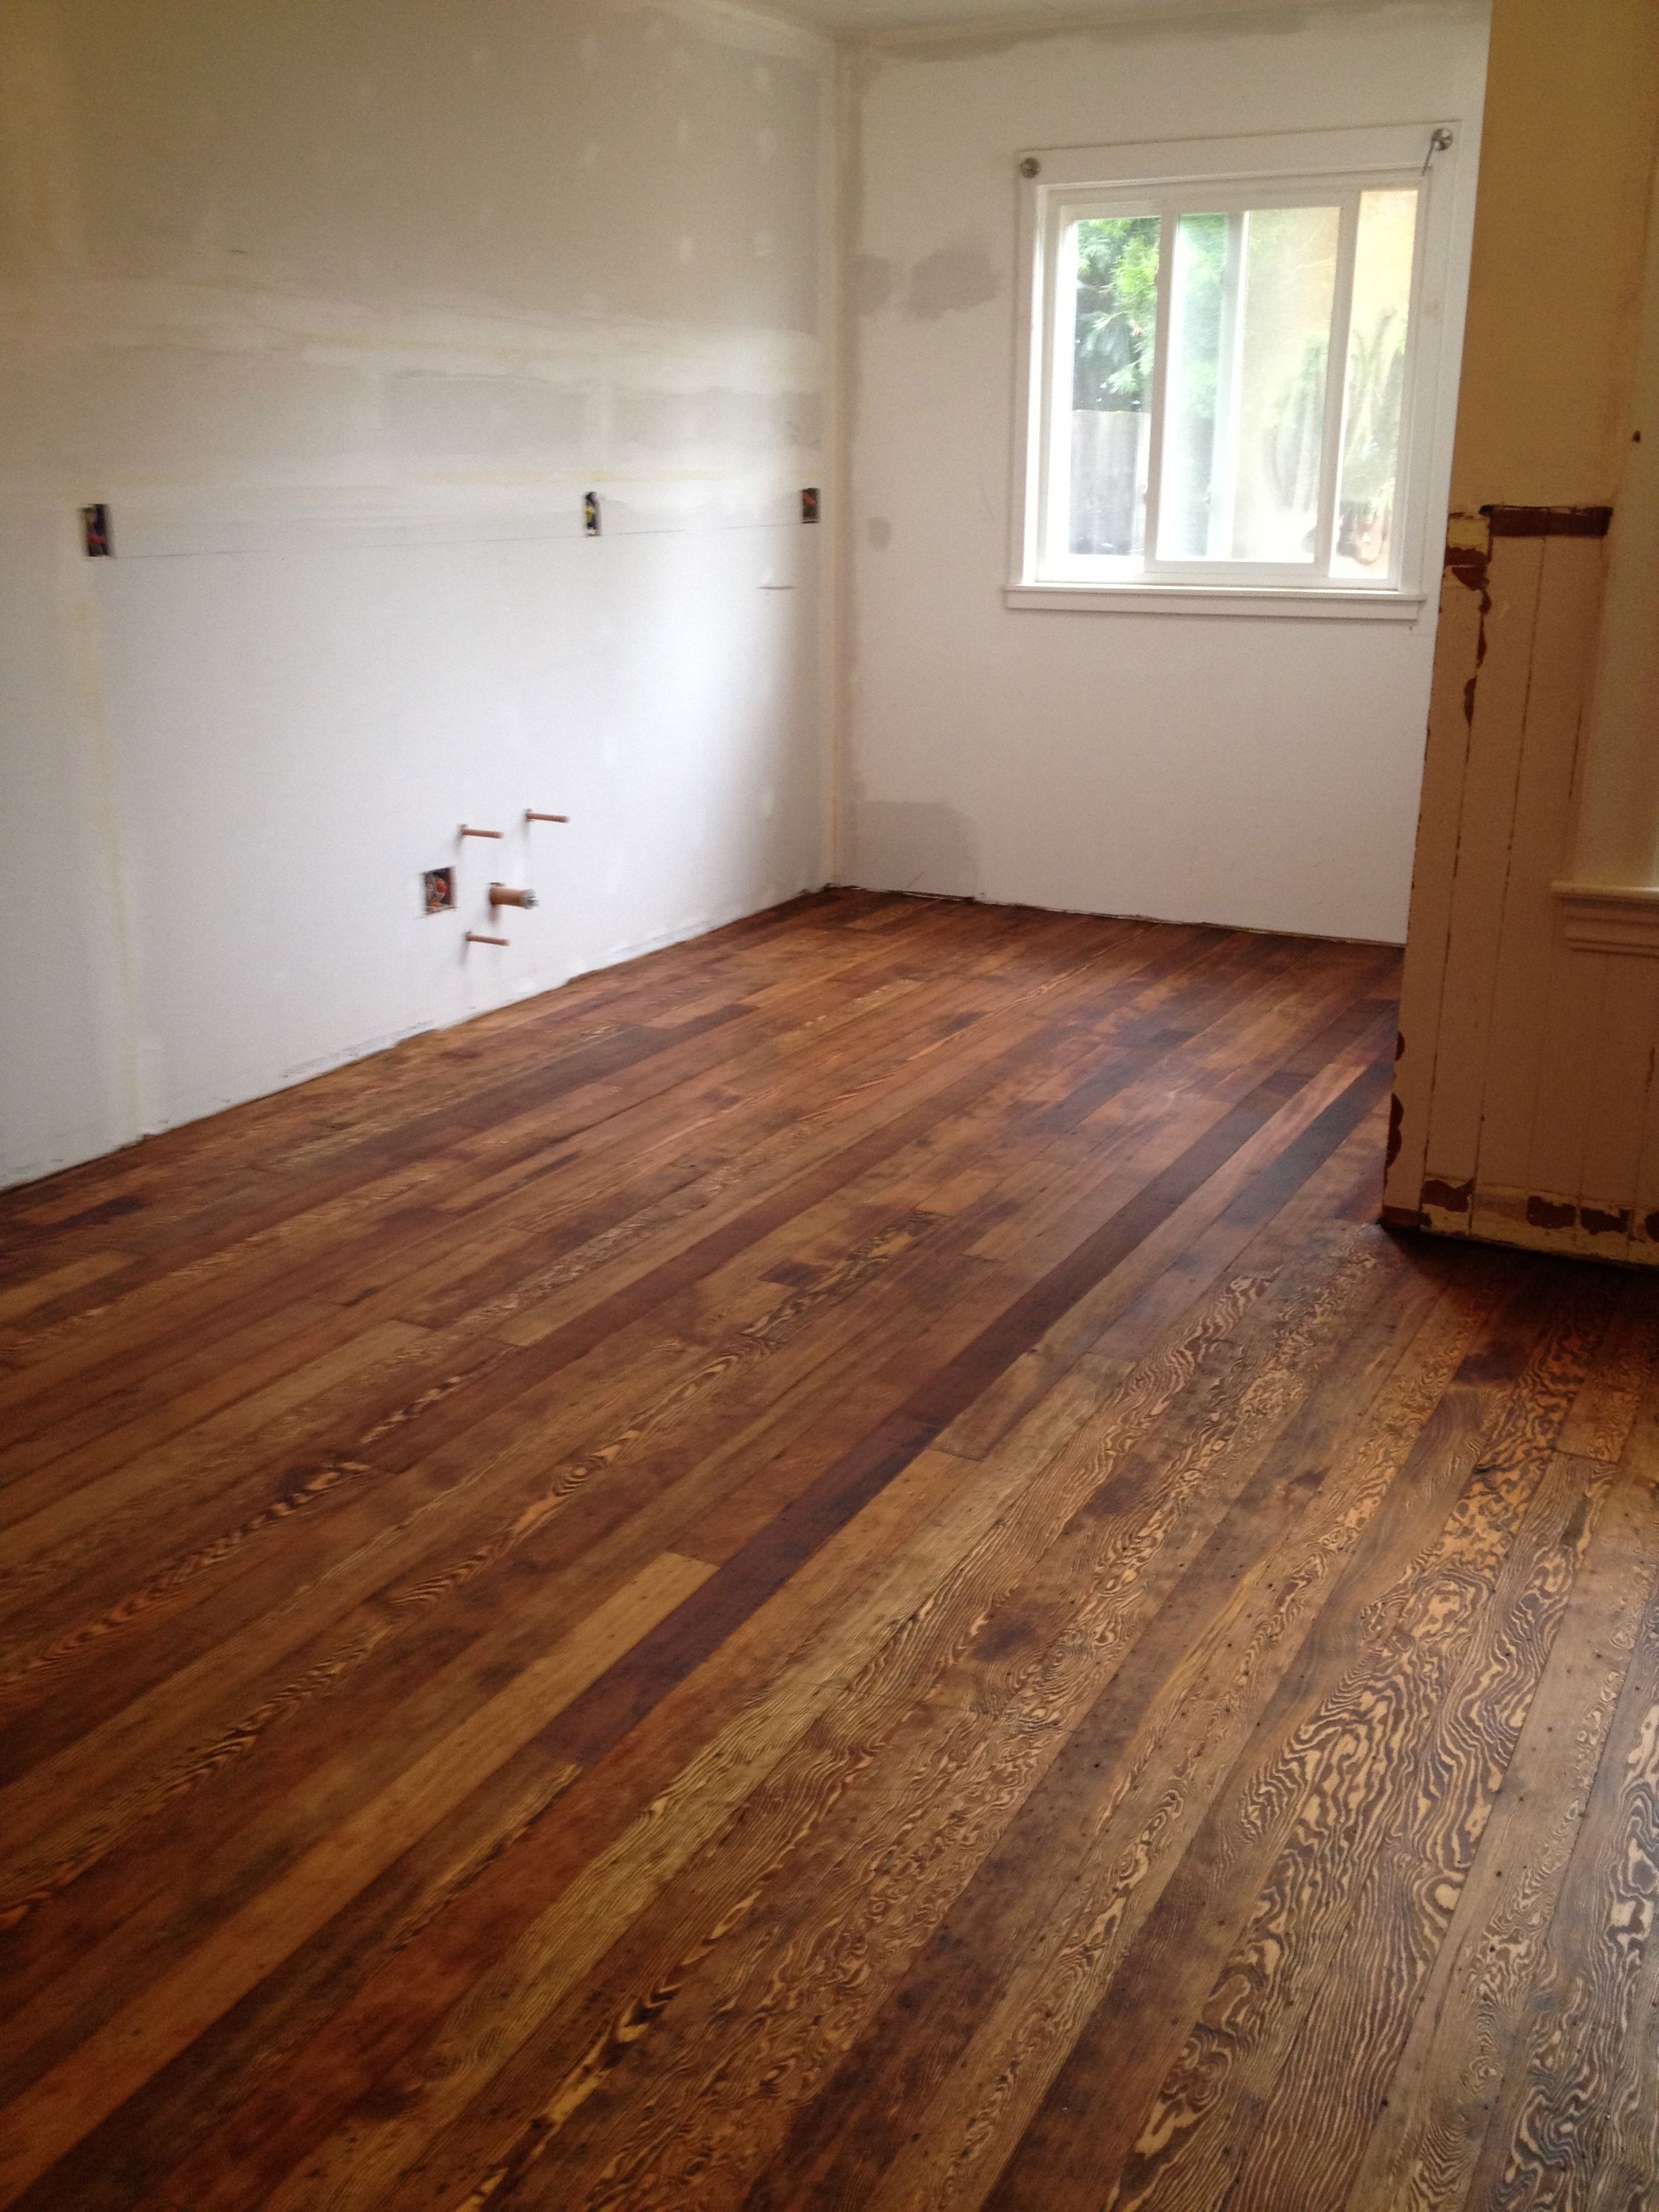 The reused, salvaged and original old-growth Douglas fir ...